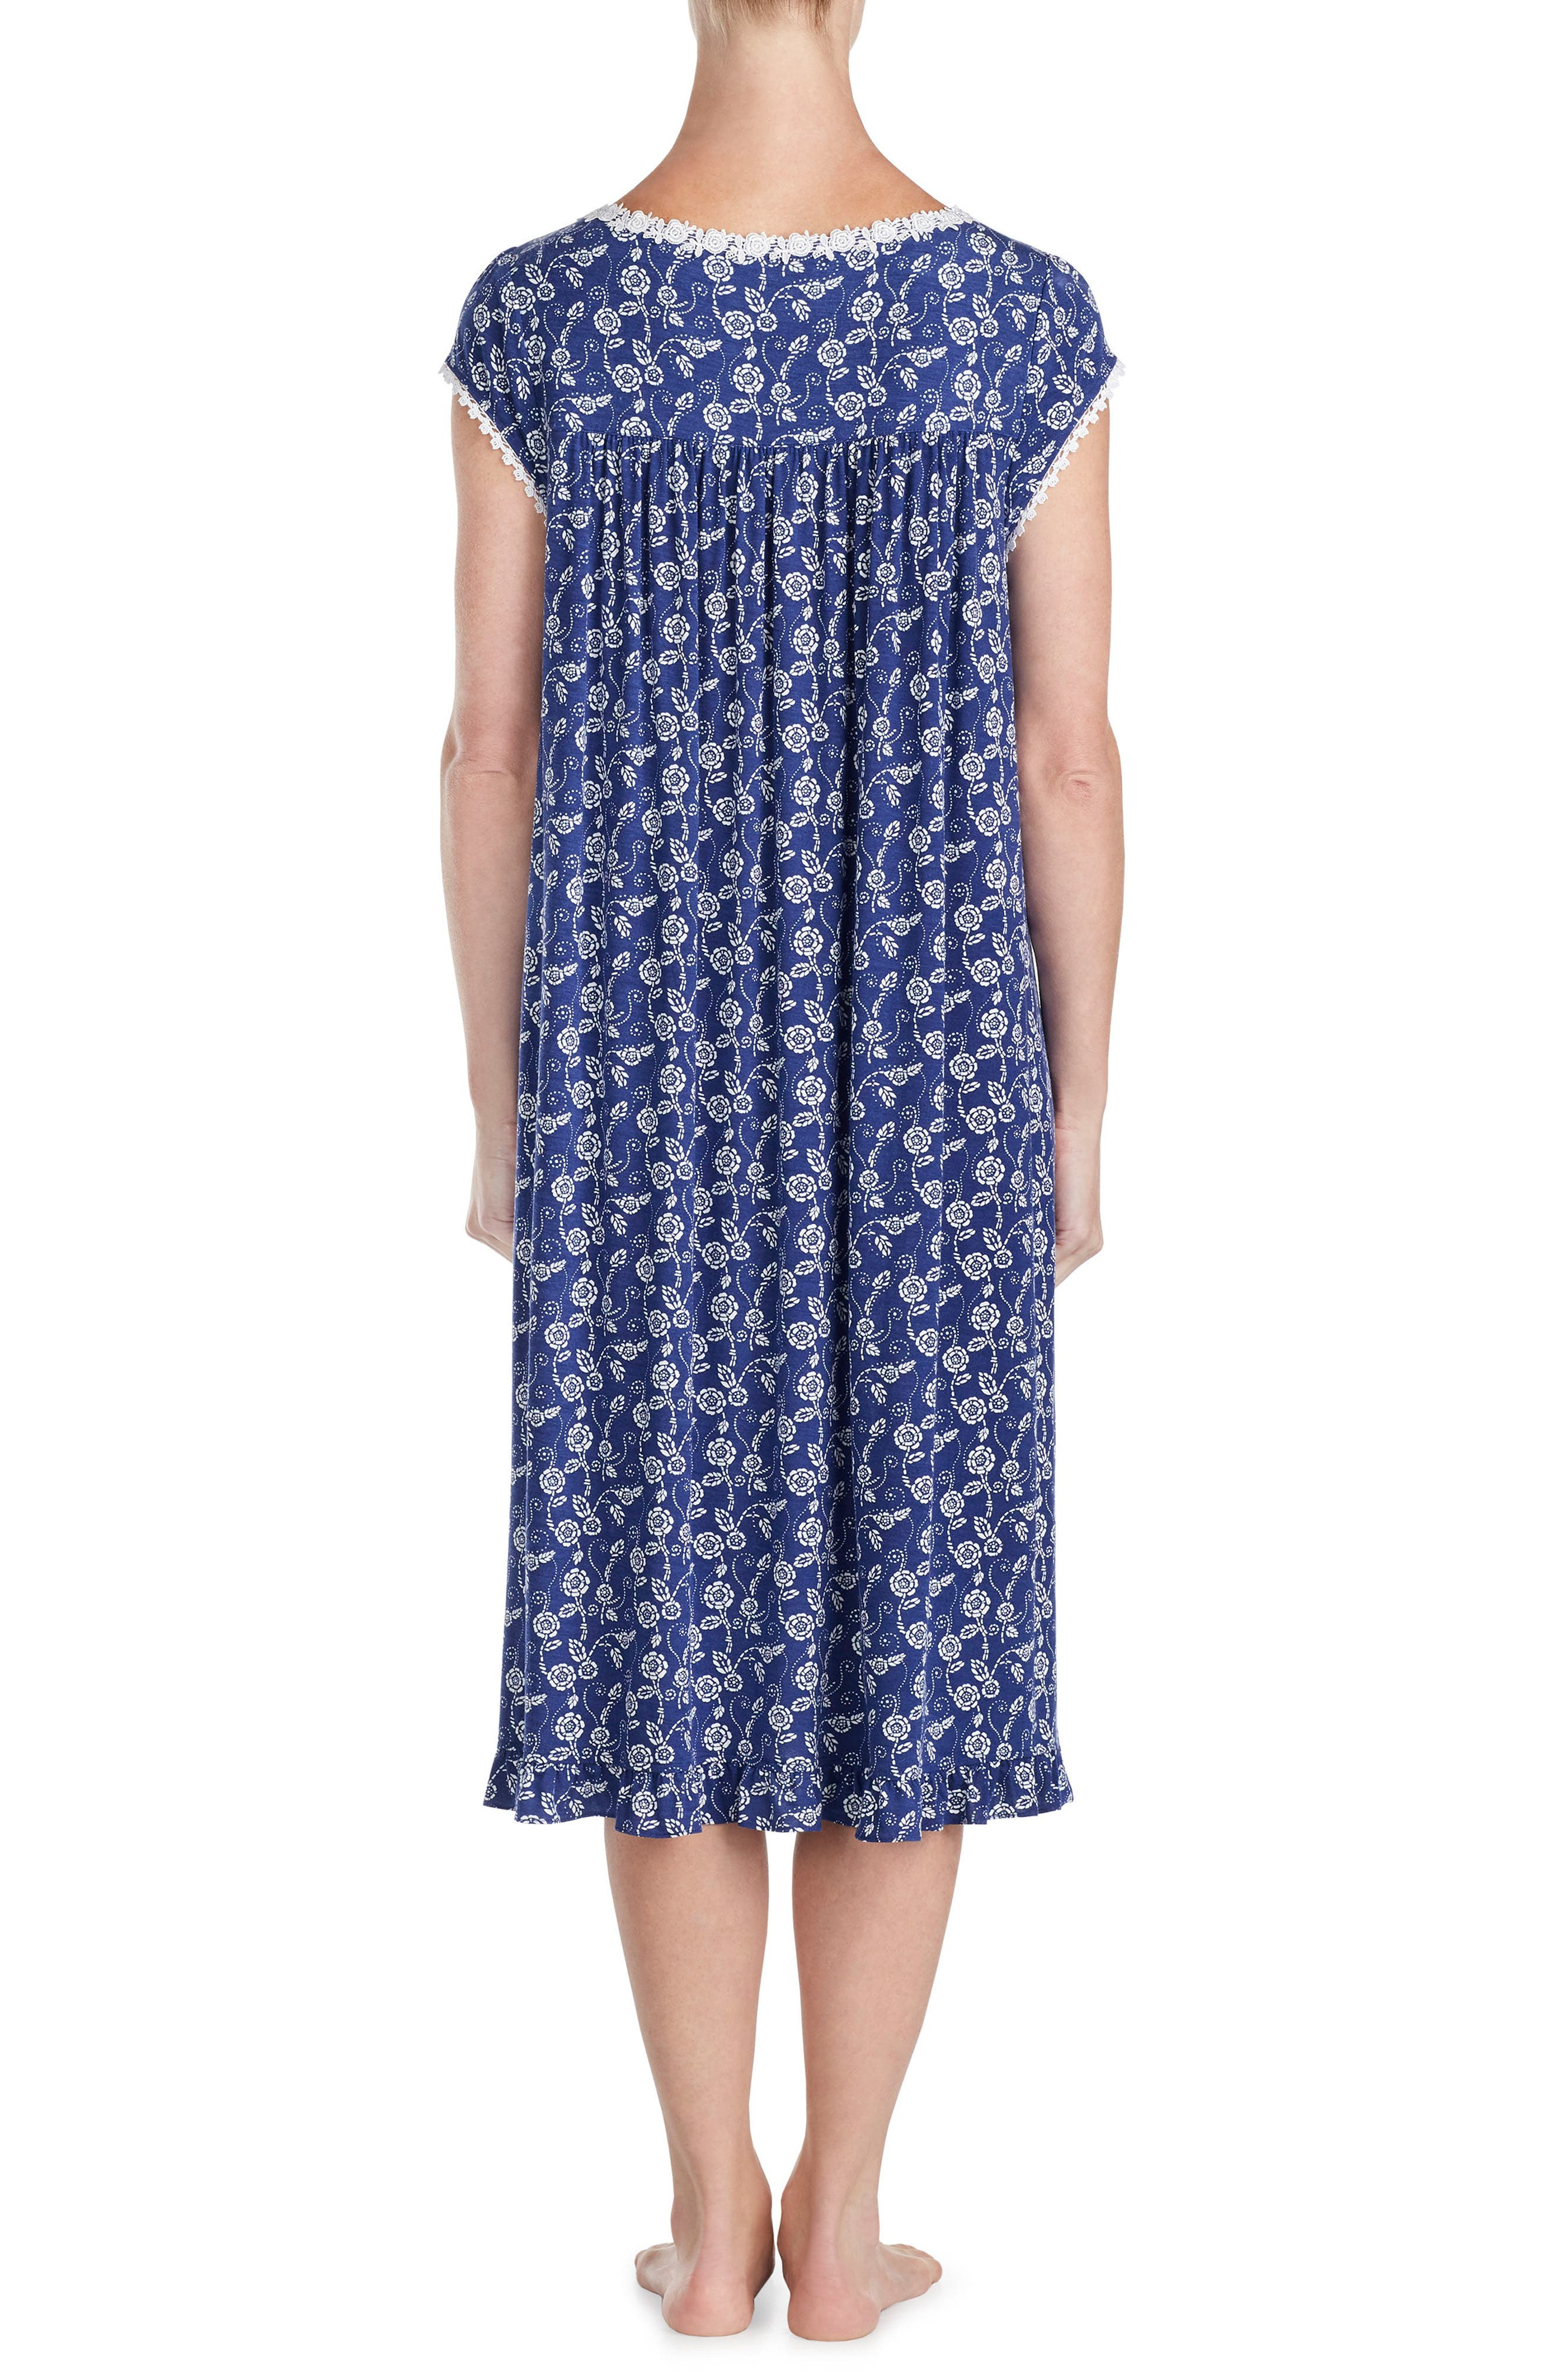 Floral Print Nightgown,                             Alternate thumbnail 2, color,                             412